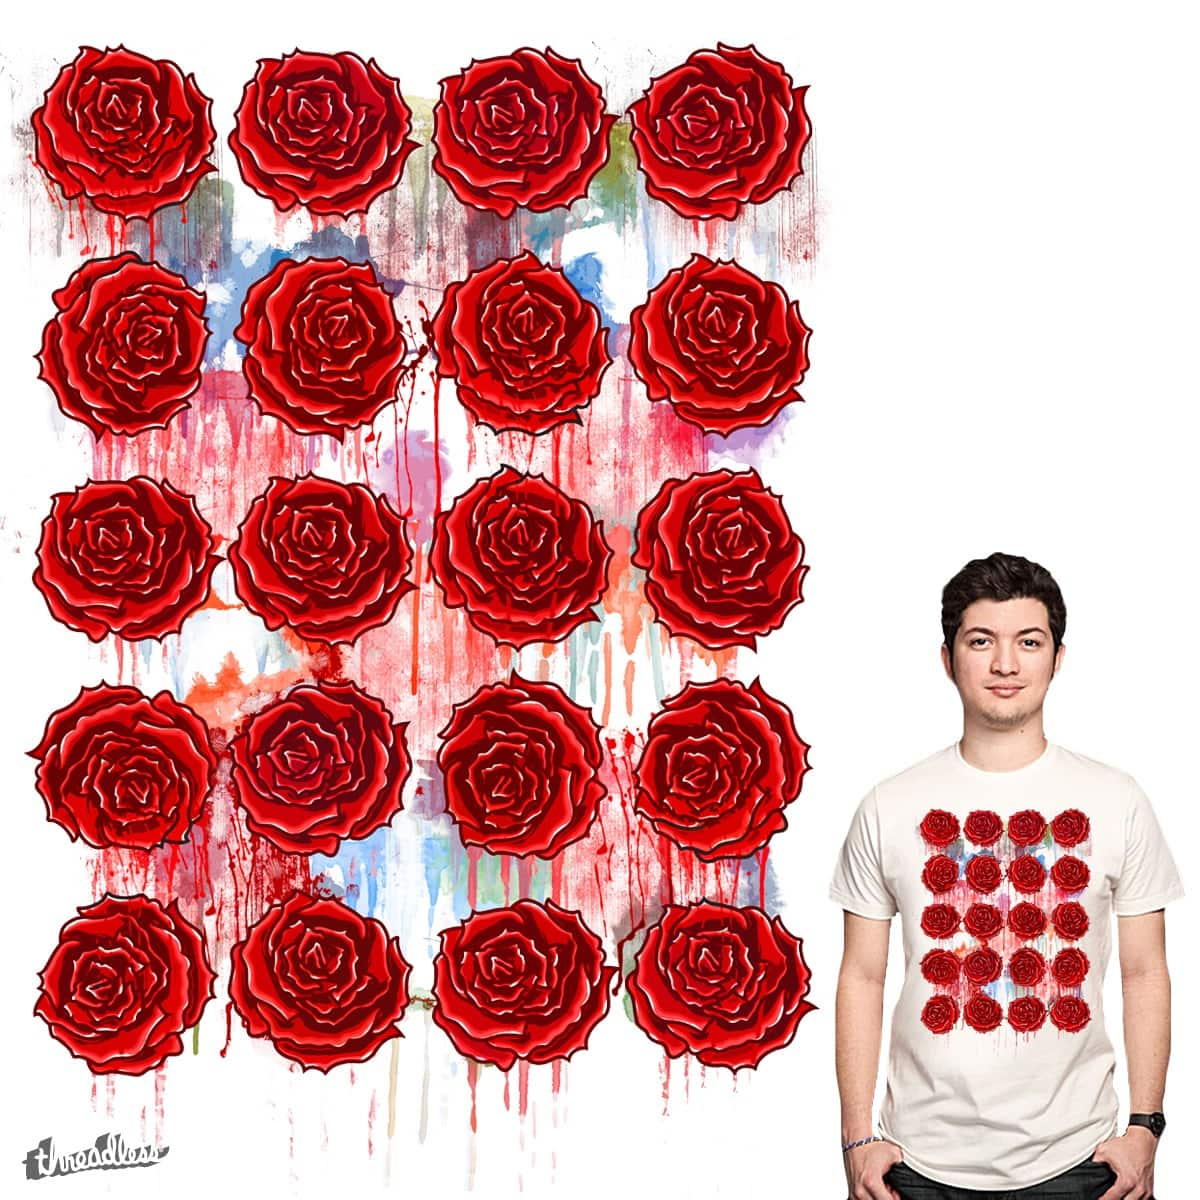 Bleeding Roses by PolySciGuy on Threadless